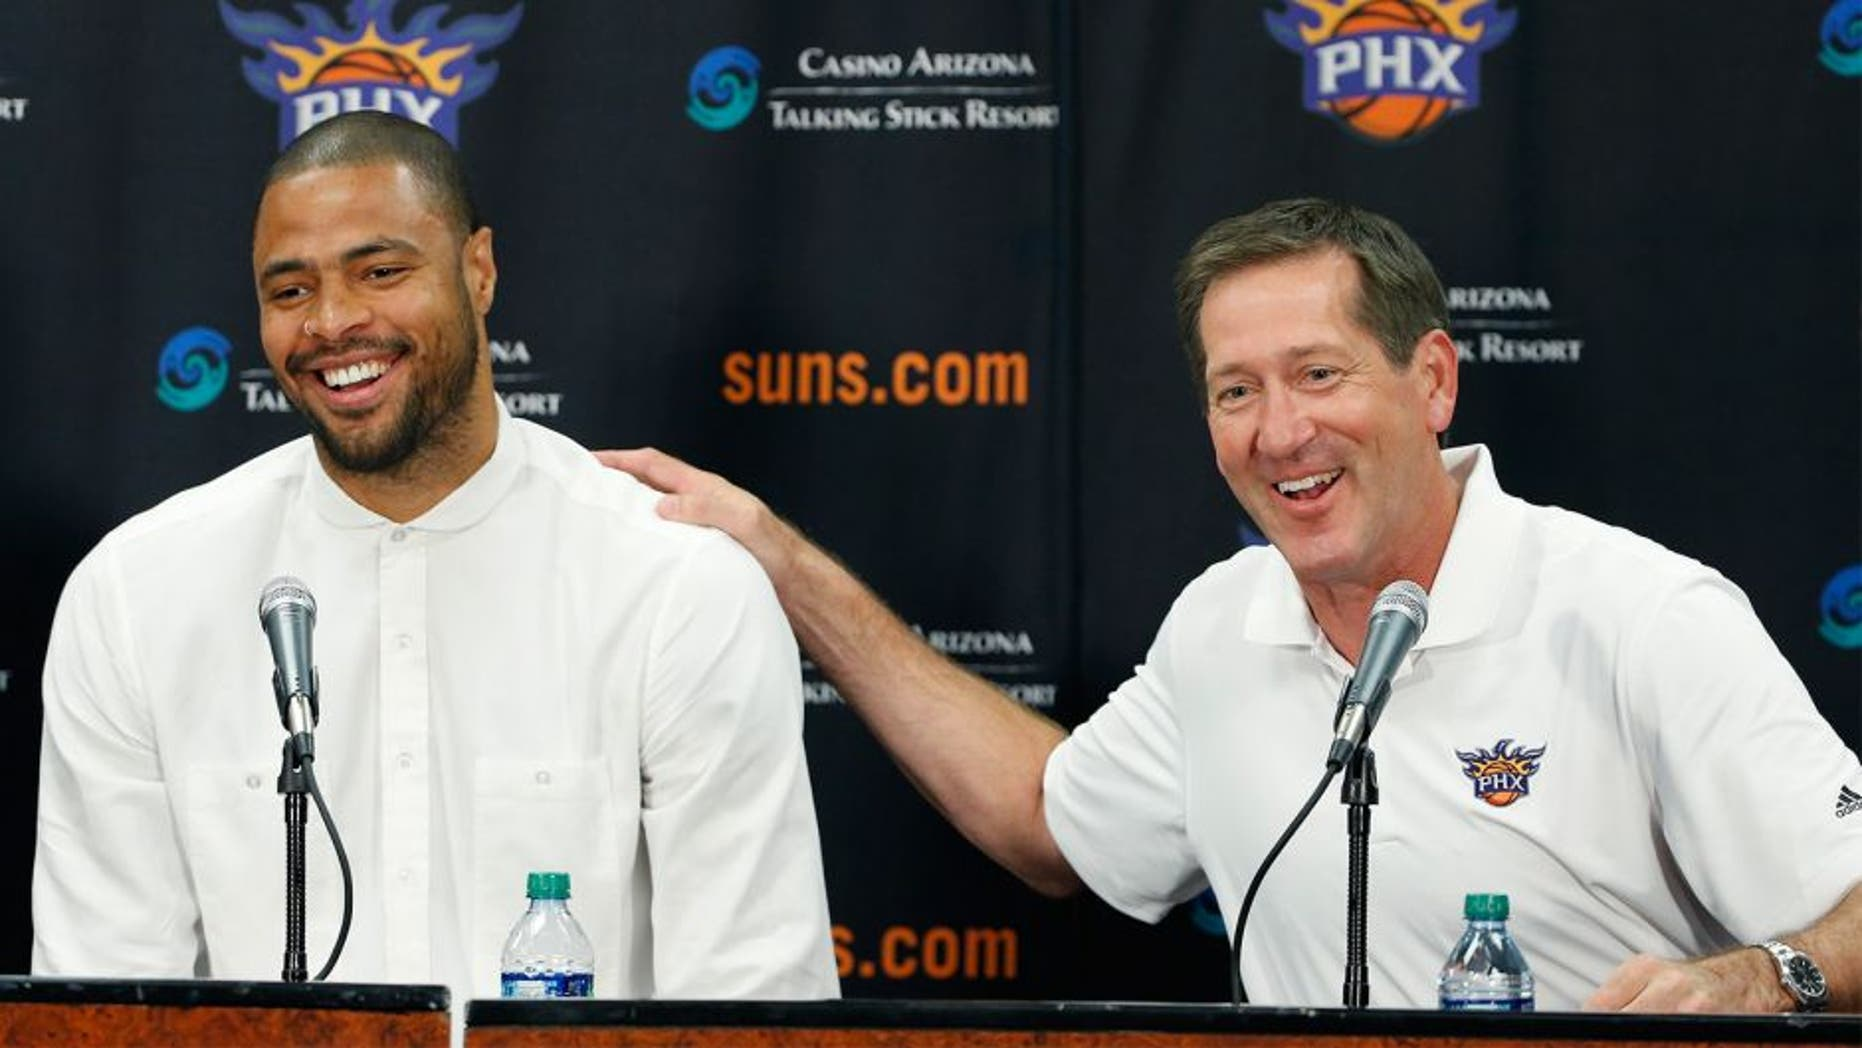 Phoenix Suns' Tyson Chandler, left, the newly signed free agent, laughs along with head coach Jeff Hornacek, right, as Chandler is introduced to the media during a news conference Thursday, July 9, 2015, in Phoenix. (AP Photo/Ross D. Franklin)